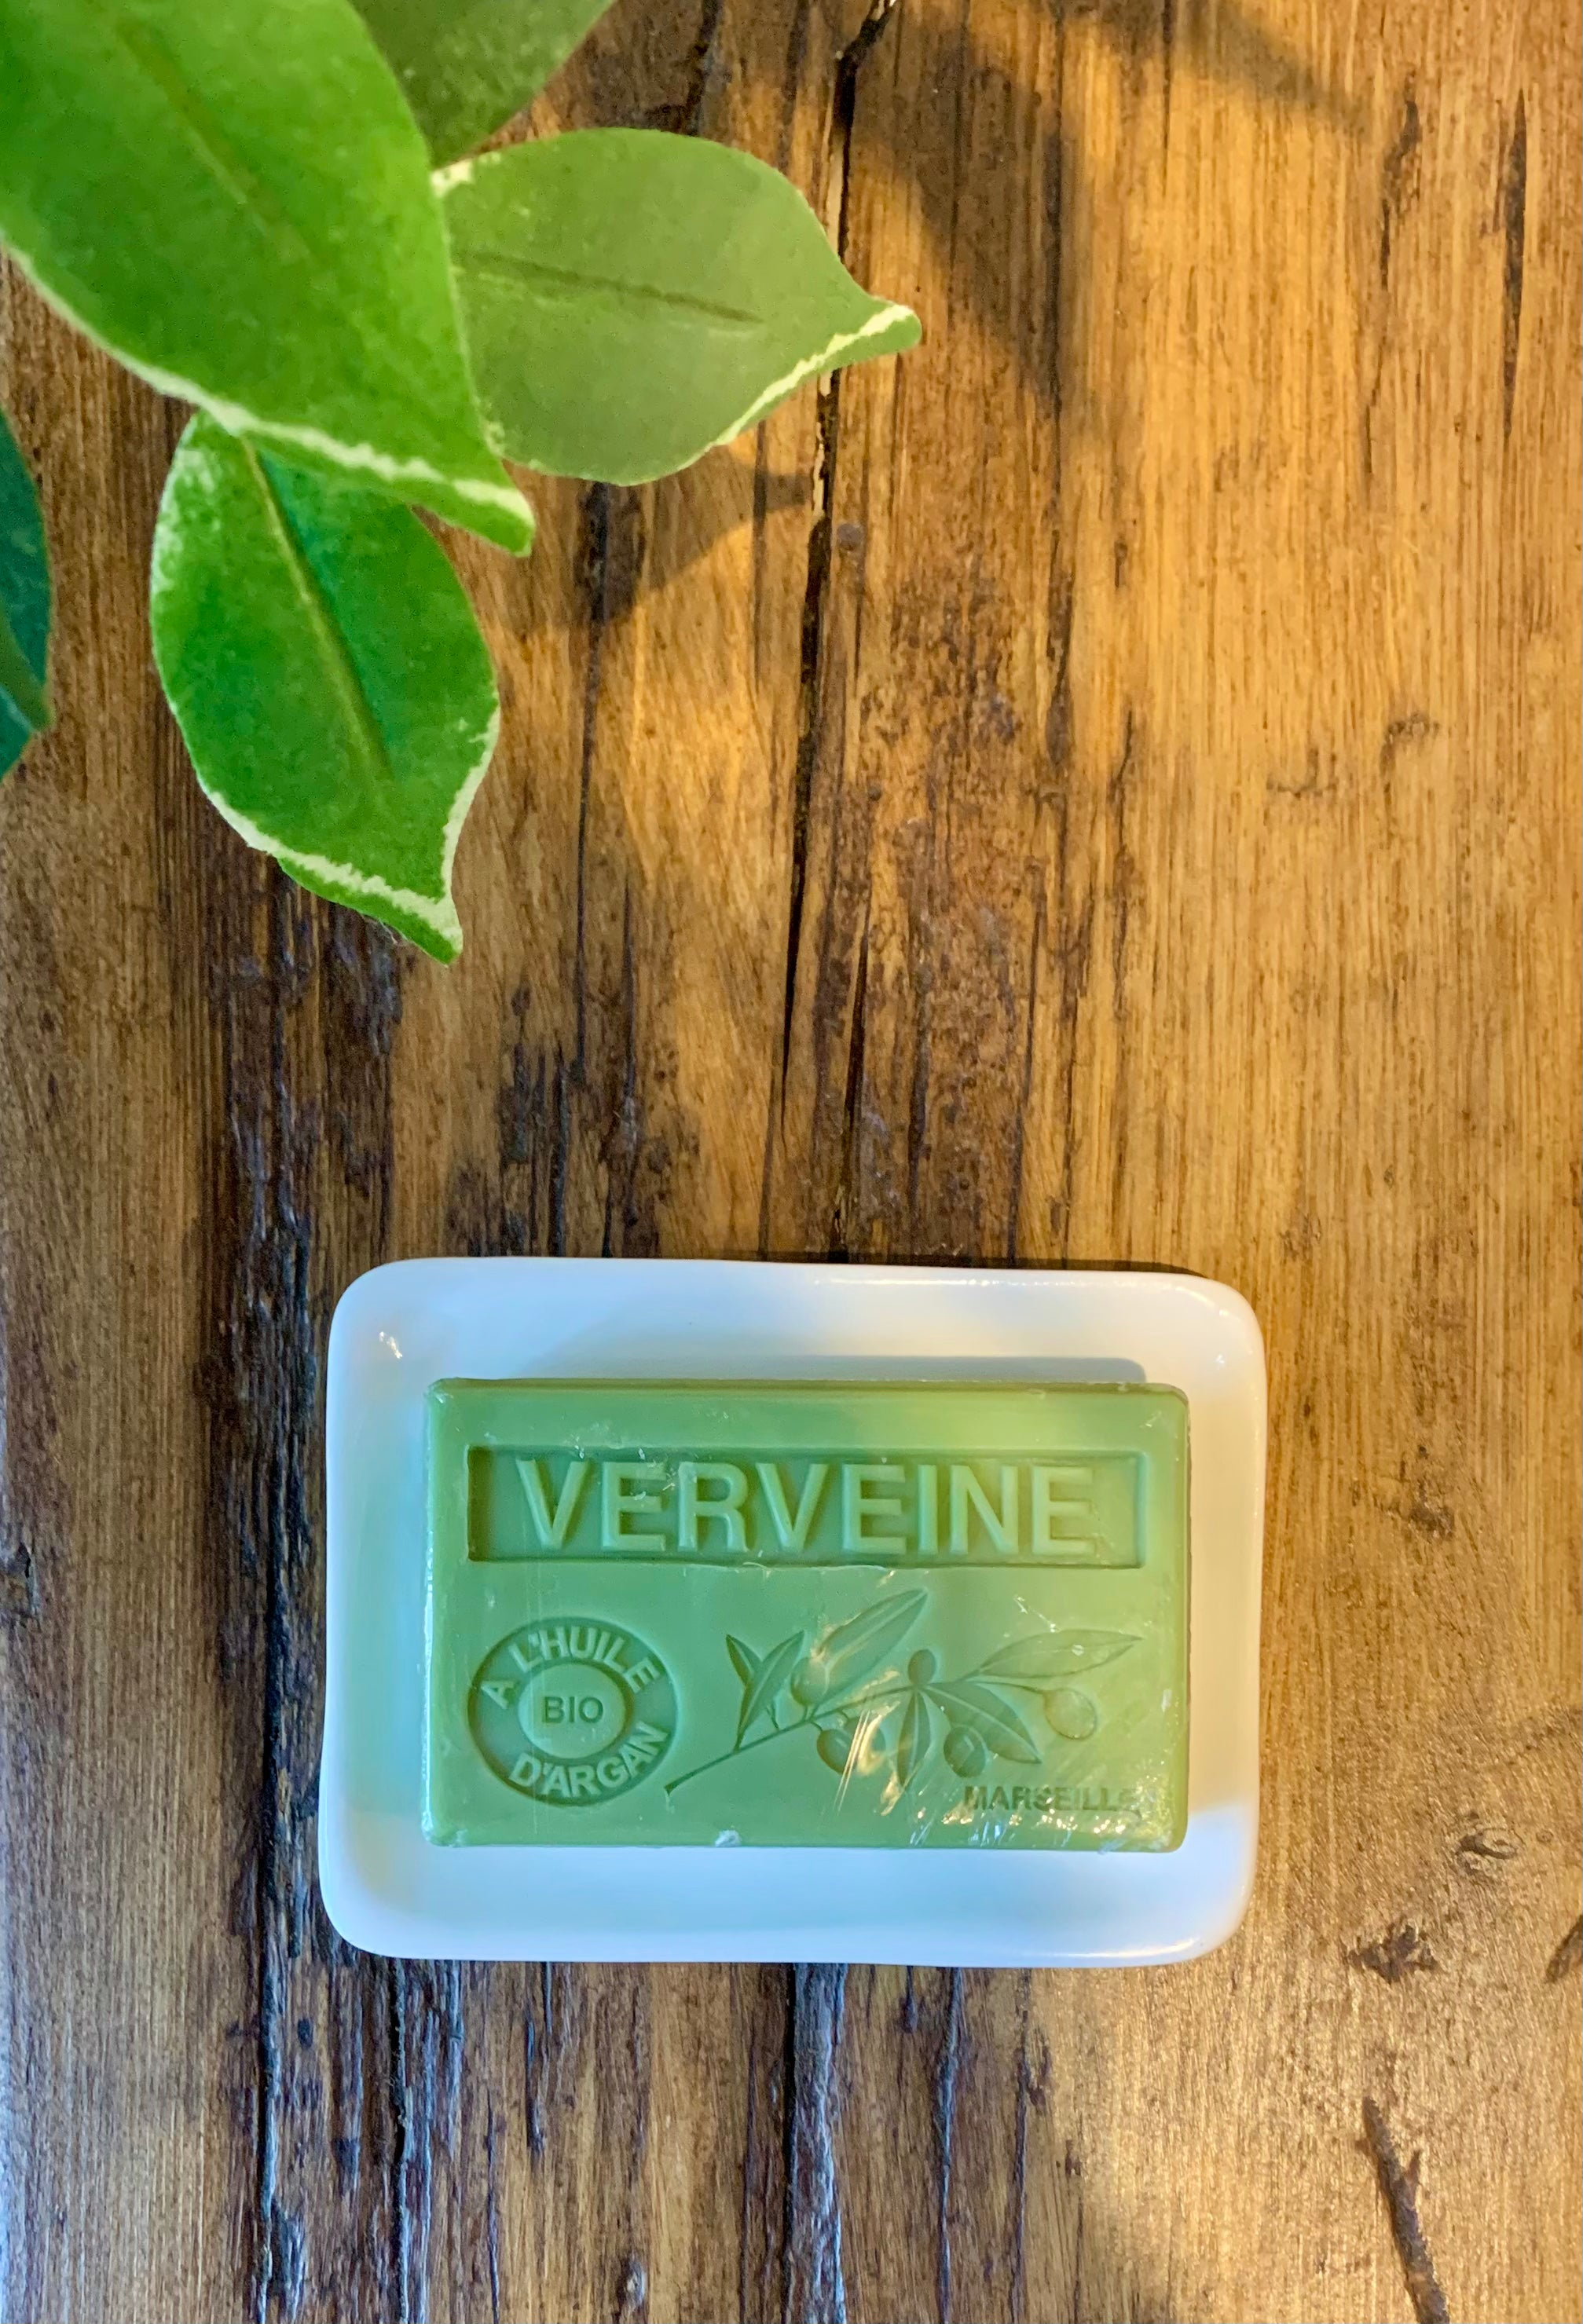 Verveine French Soap with Argan Oil 3 for 2